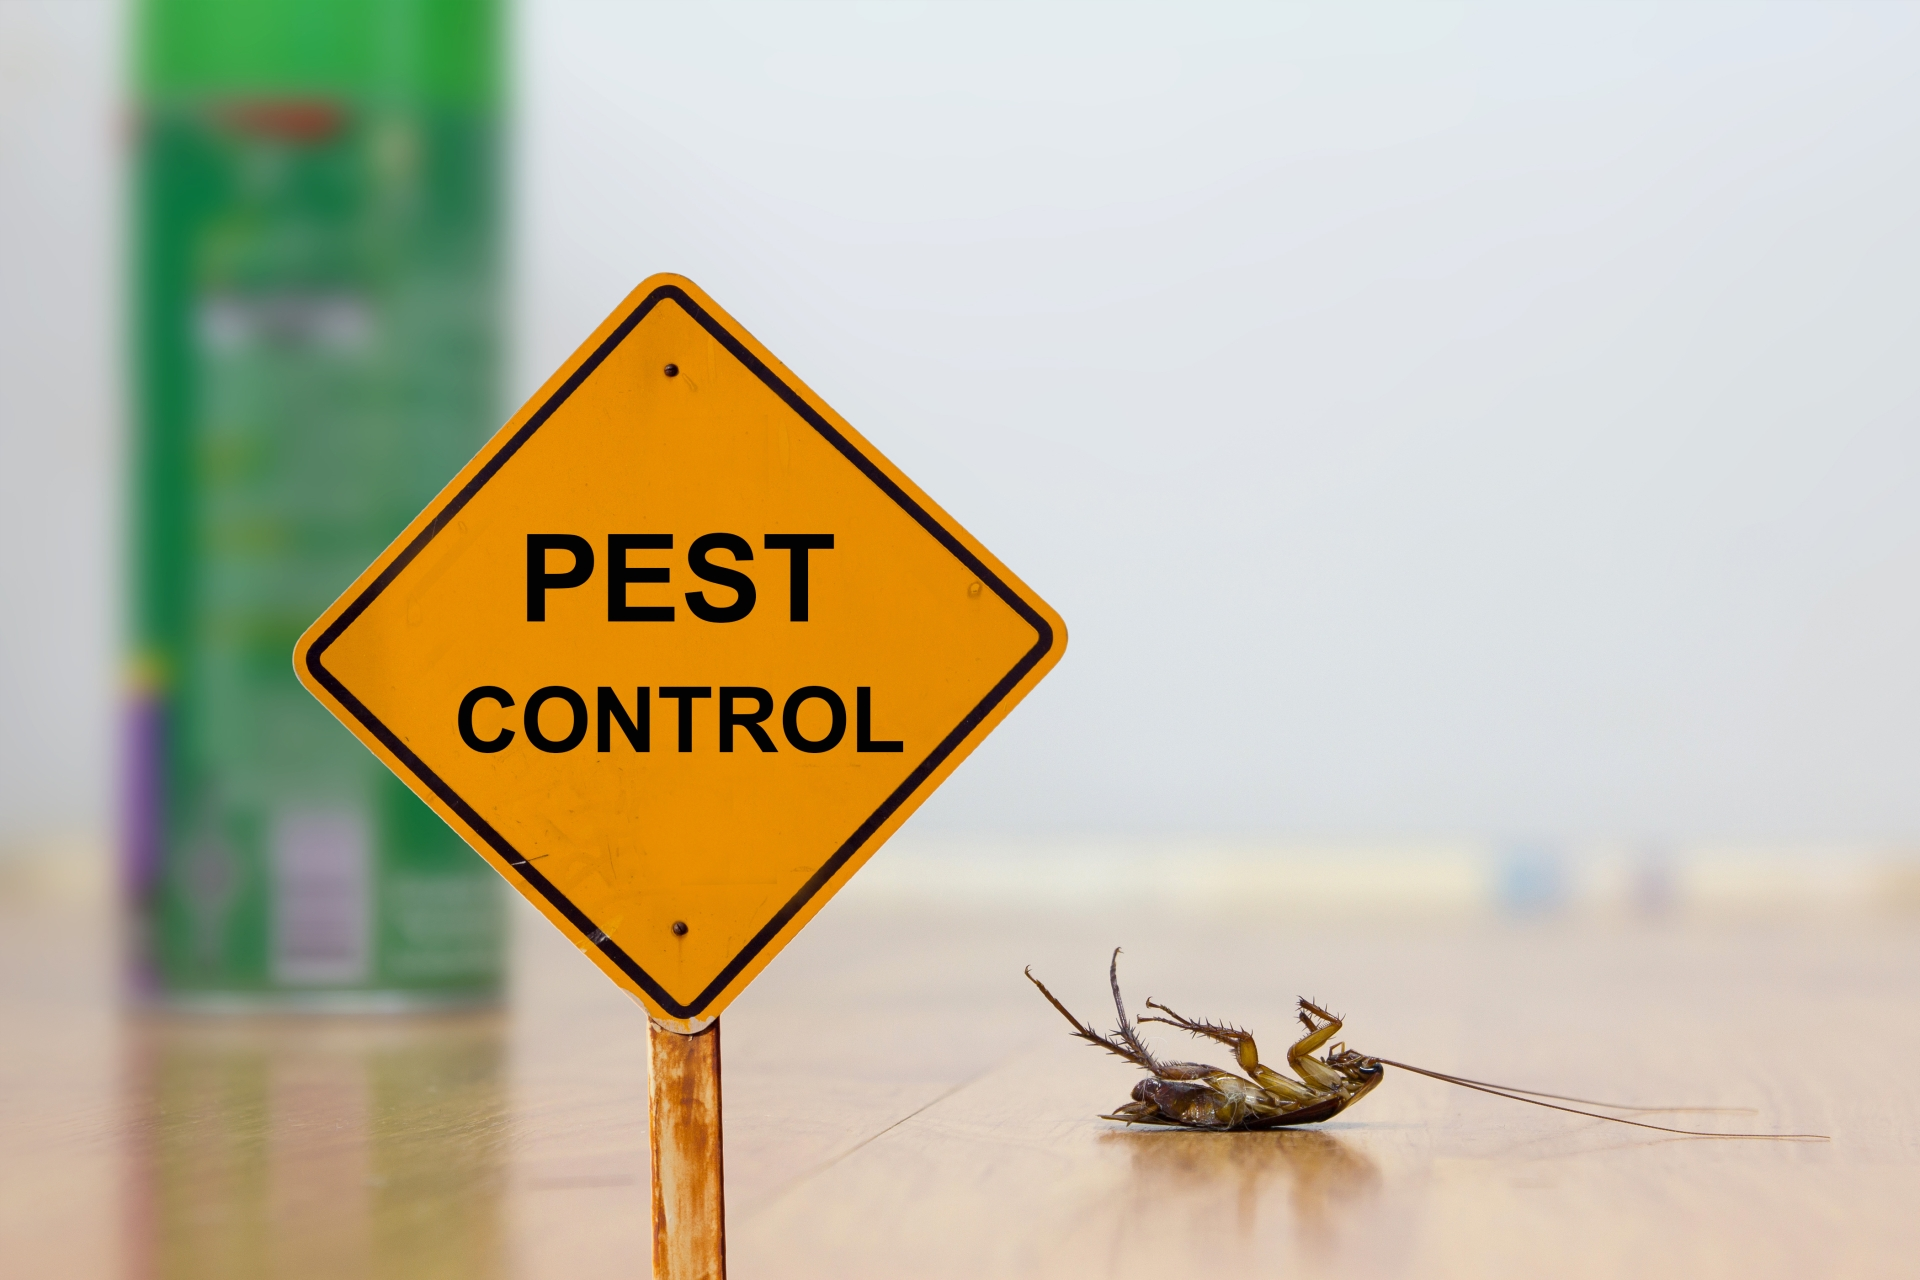 24 Hour Pest Control, Pest Control in Isleworth, TW7. Call Now 020 8166 9746